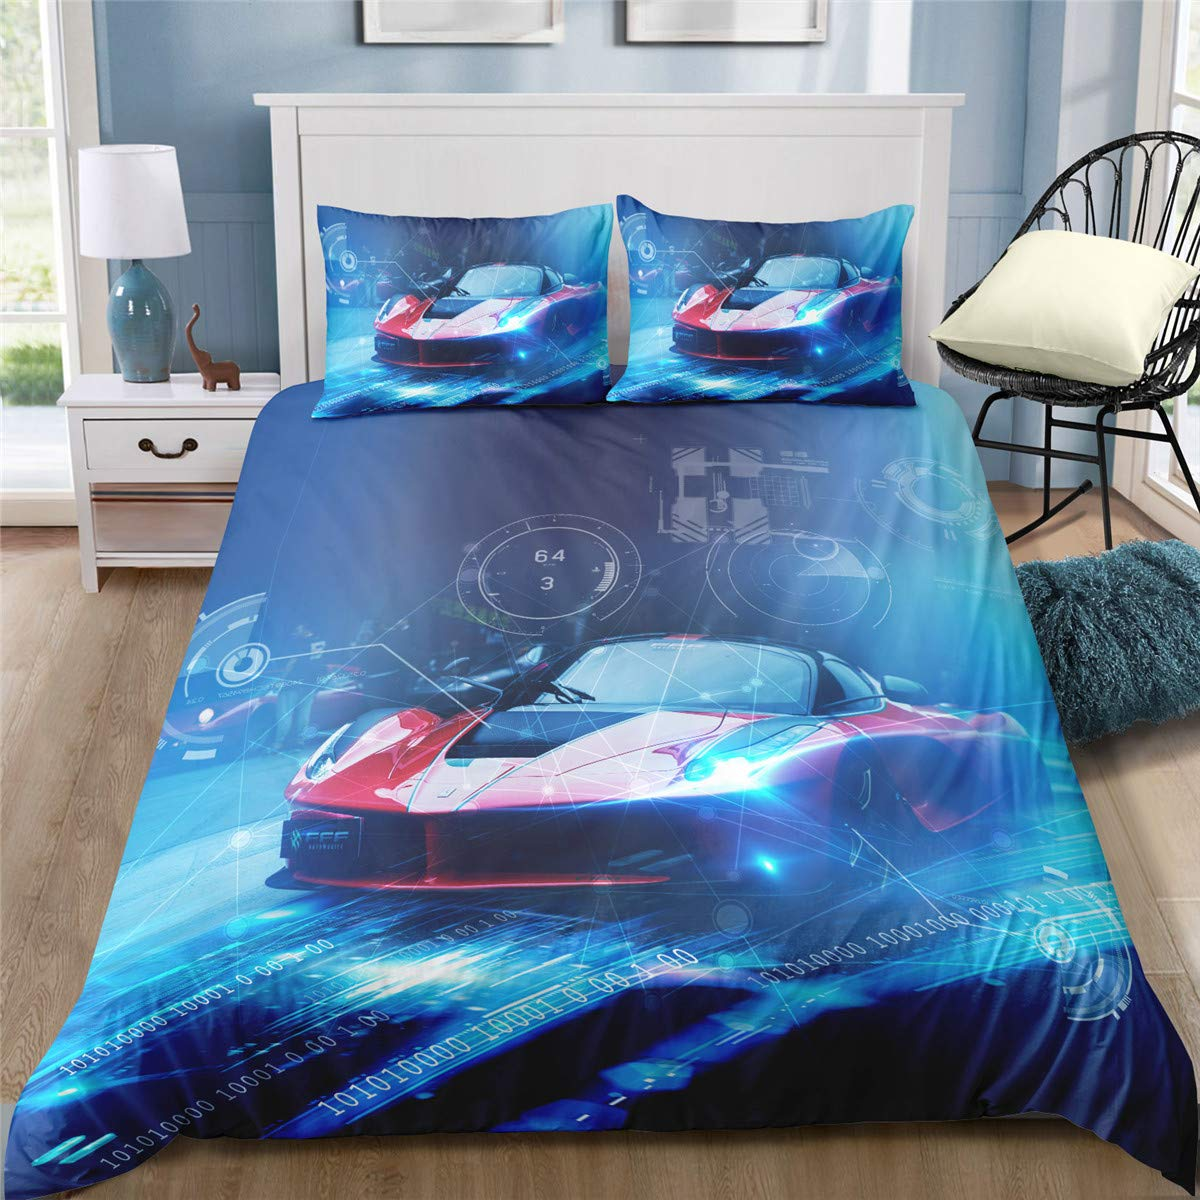 Helehome Race Car Duvet Cover Sets Boy's Sport Bedding Set with Zipper Closure for Kids 3 Piece Brushed Microfiber Fabric Print,Full Size